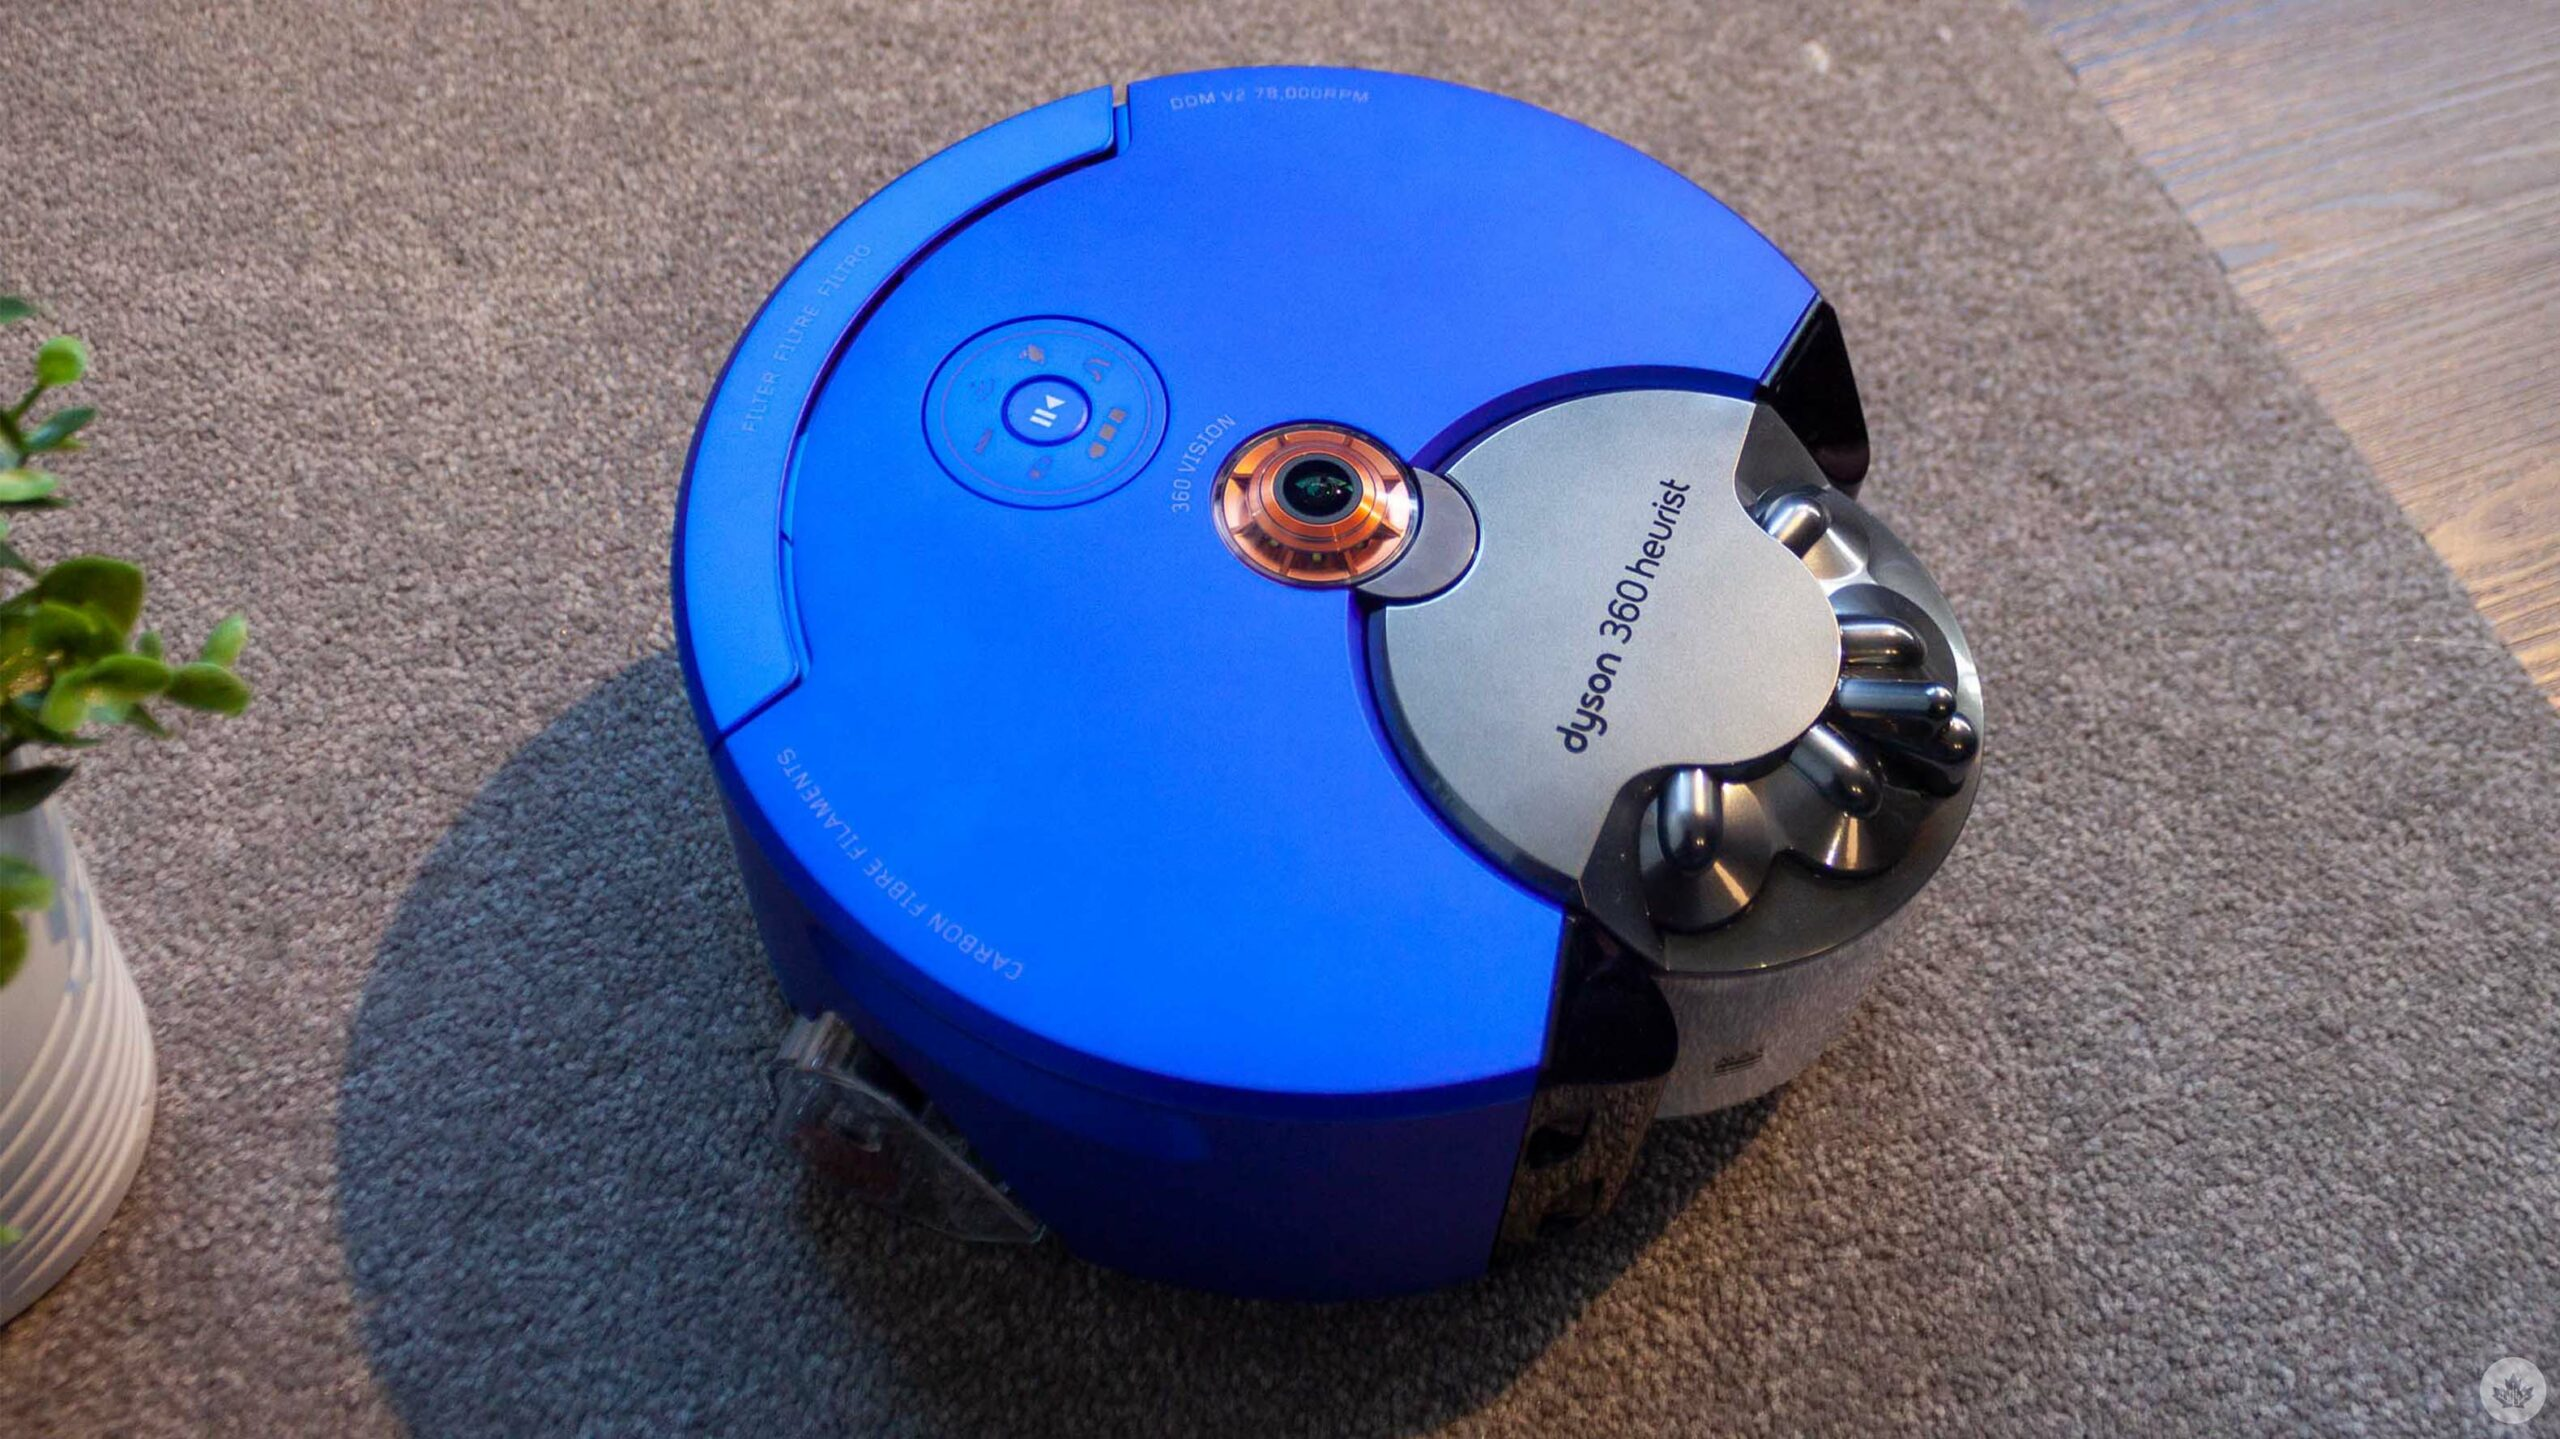 Photos of Dyson's upcoming robot vacuum revealed in FCC filing